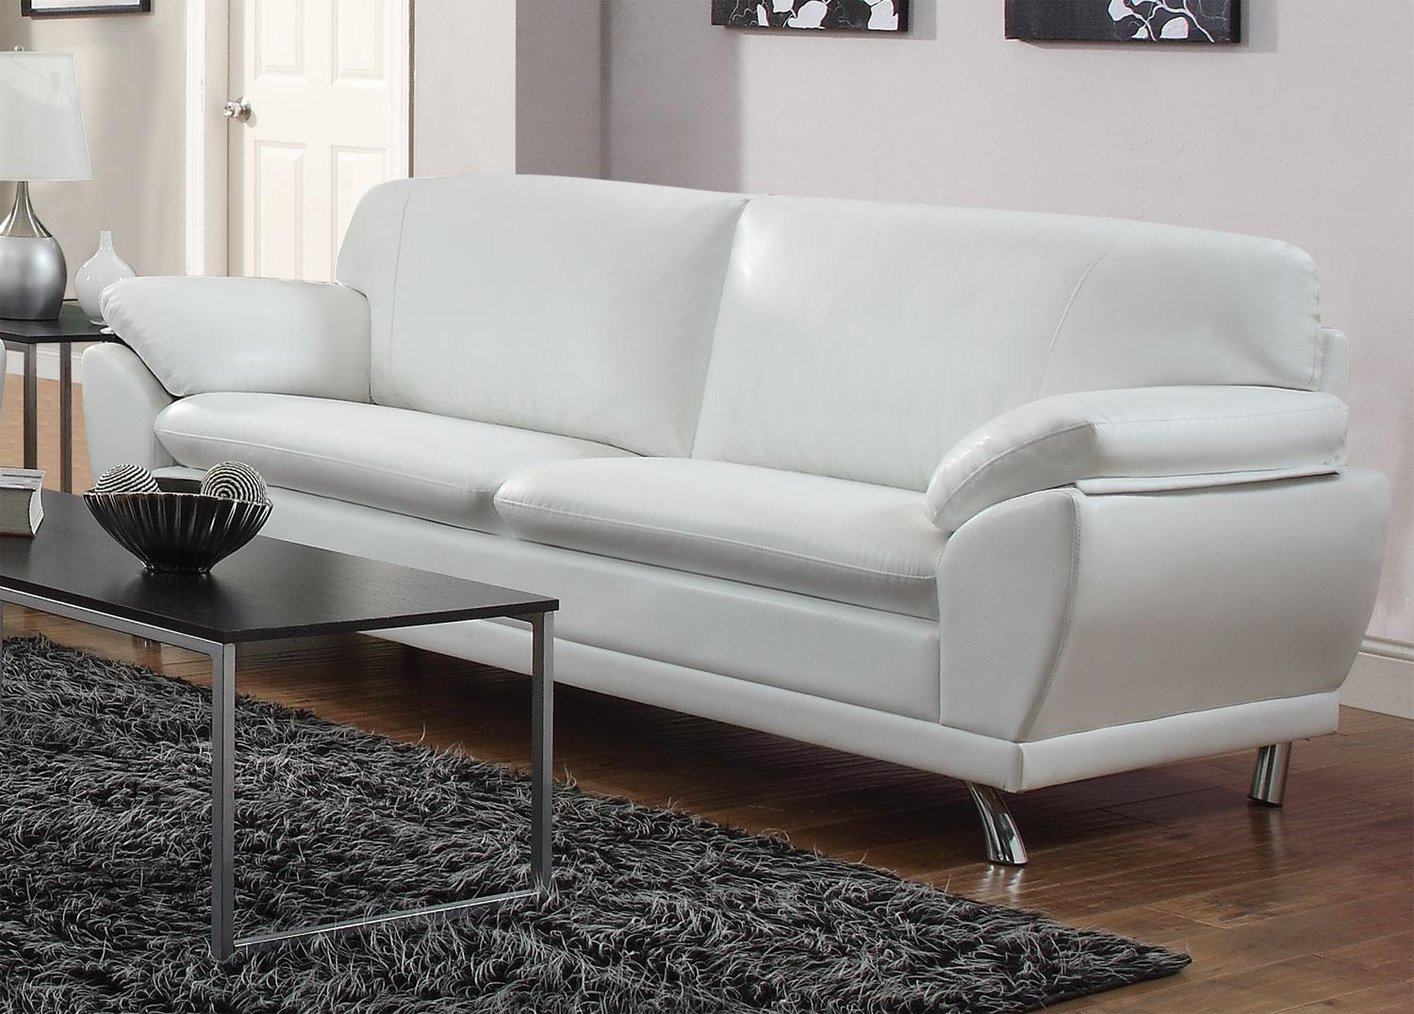 Robyn white leather sofa steal a sofa furniture outlet for White on white furniture